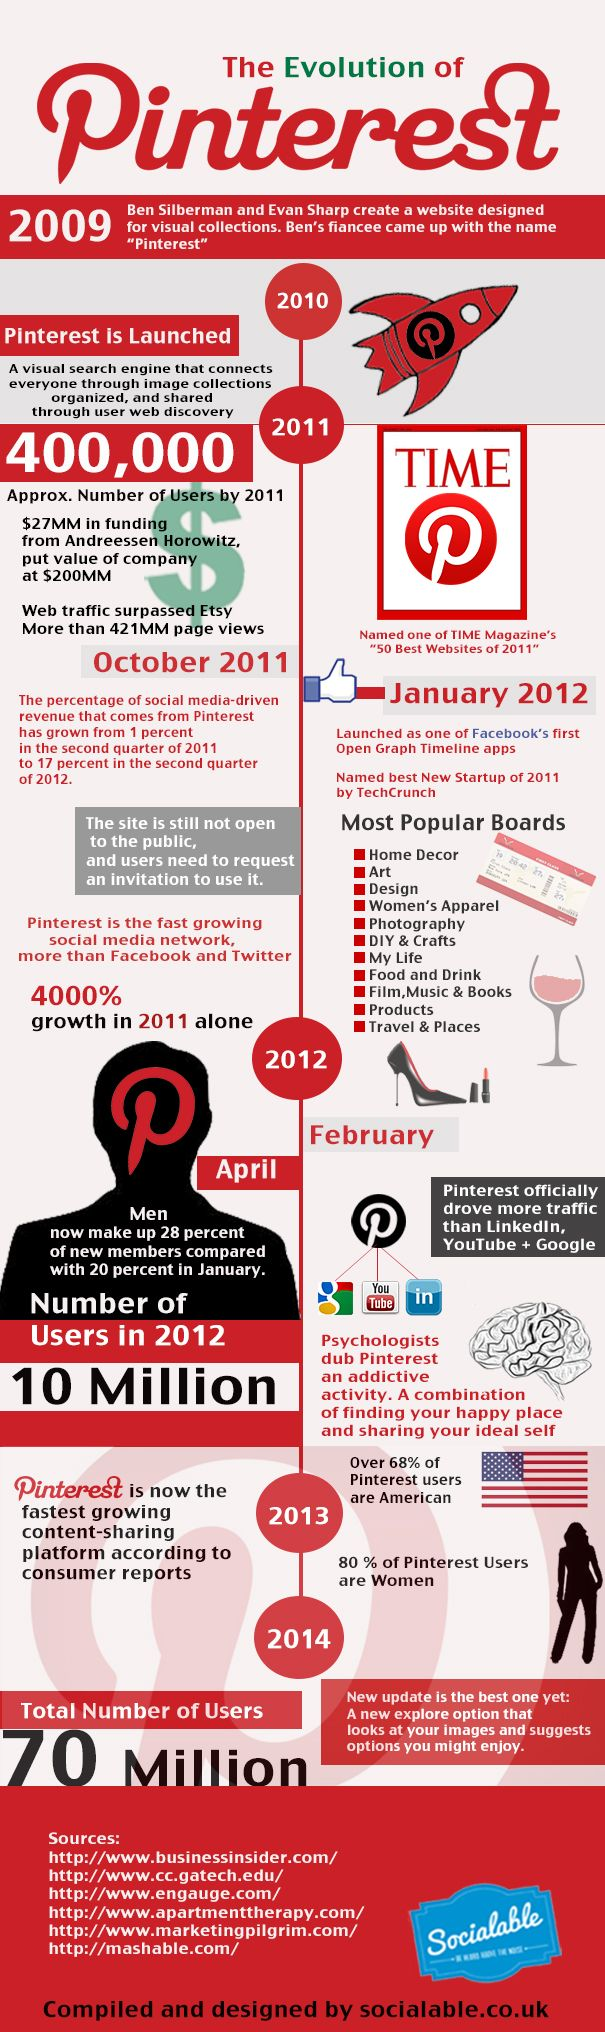 Infographic – The Evolution of Pinterest